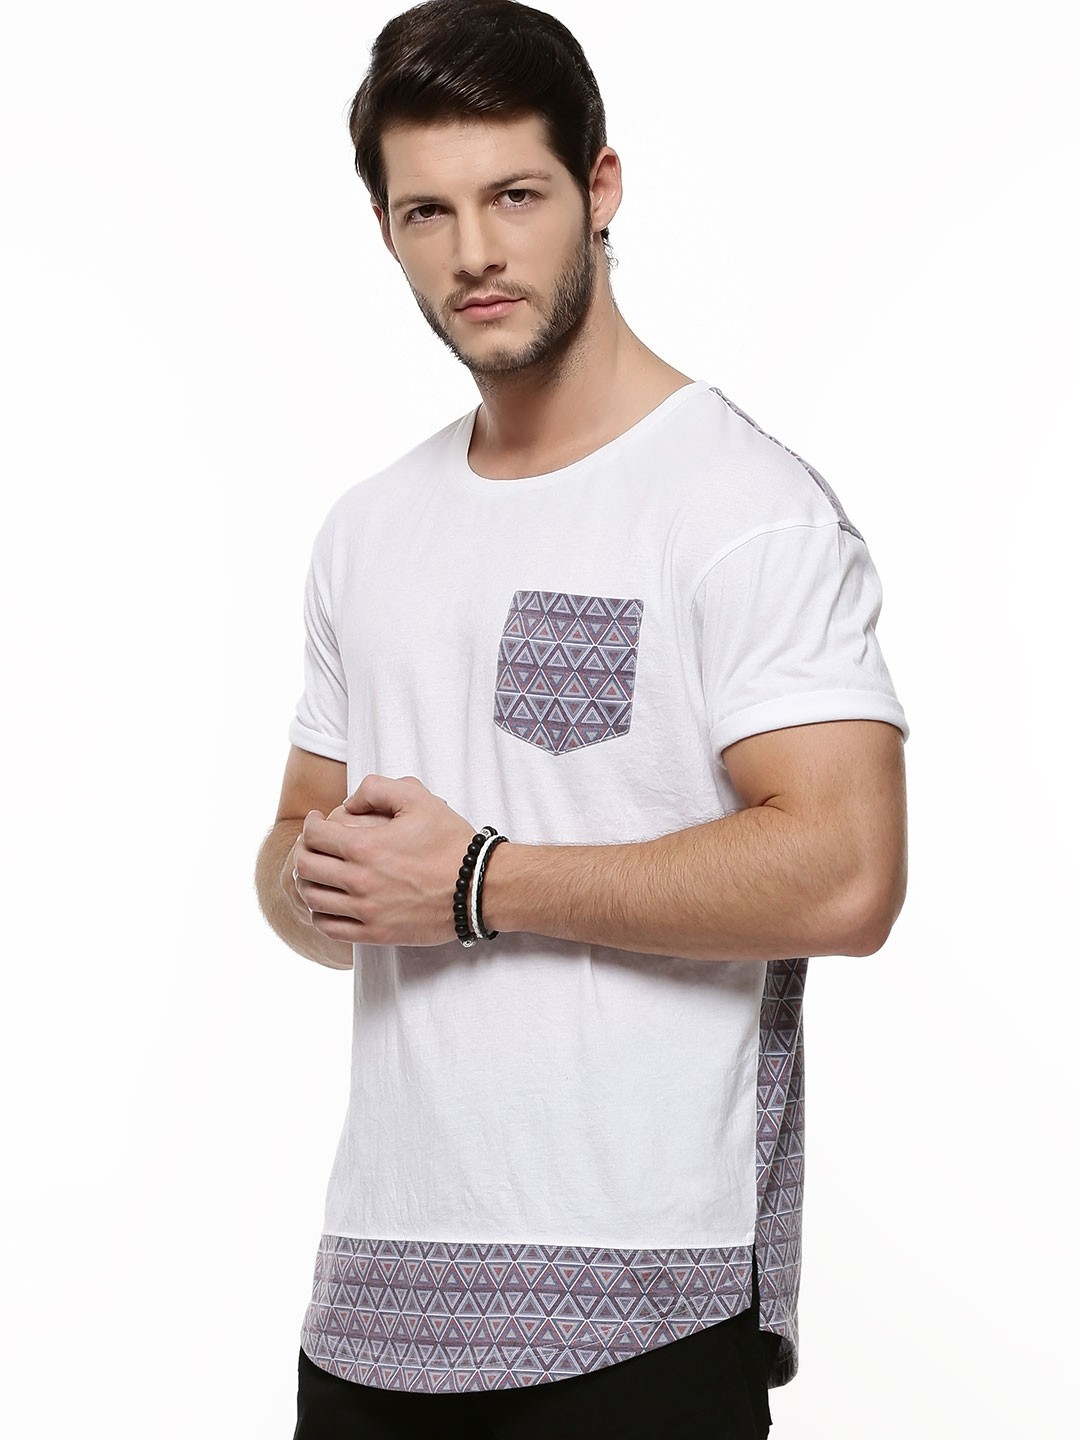 Smart & Stylish T-shirts for Men. The T-shirt is a default item of clothing for most guys. Men have plenty of T-shirts in their wardrobe and often buy them in bulk if they like the brand.